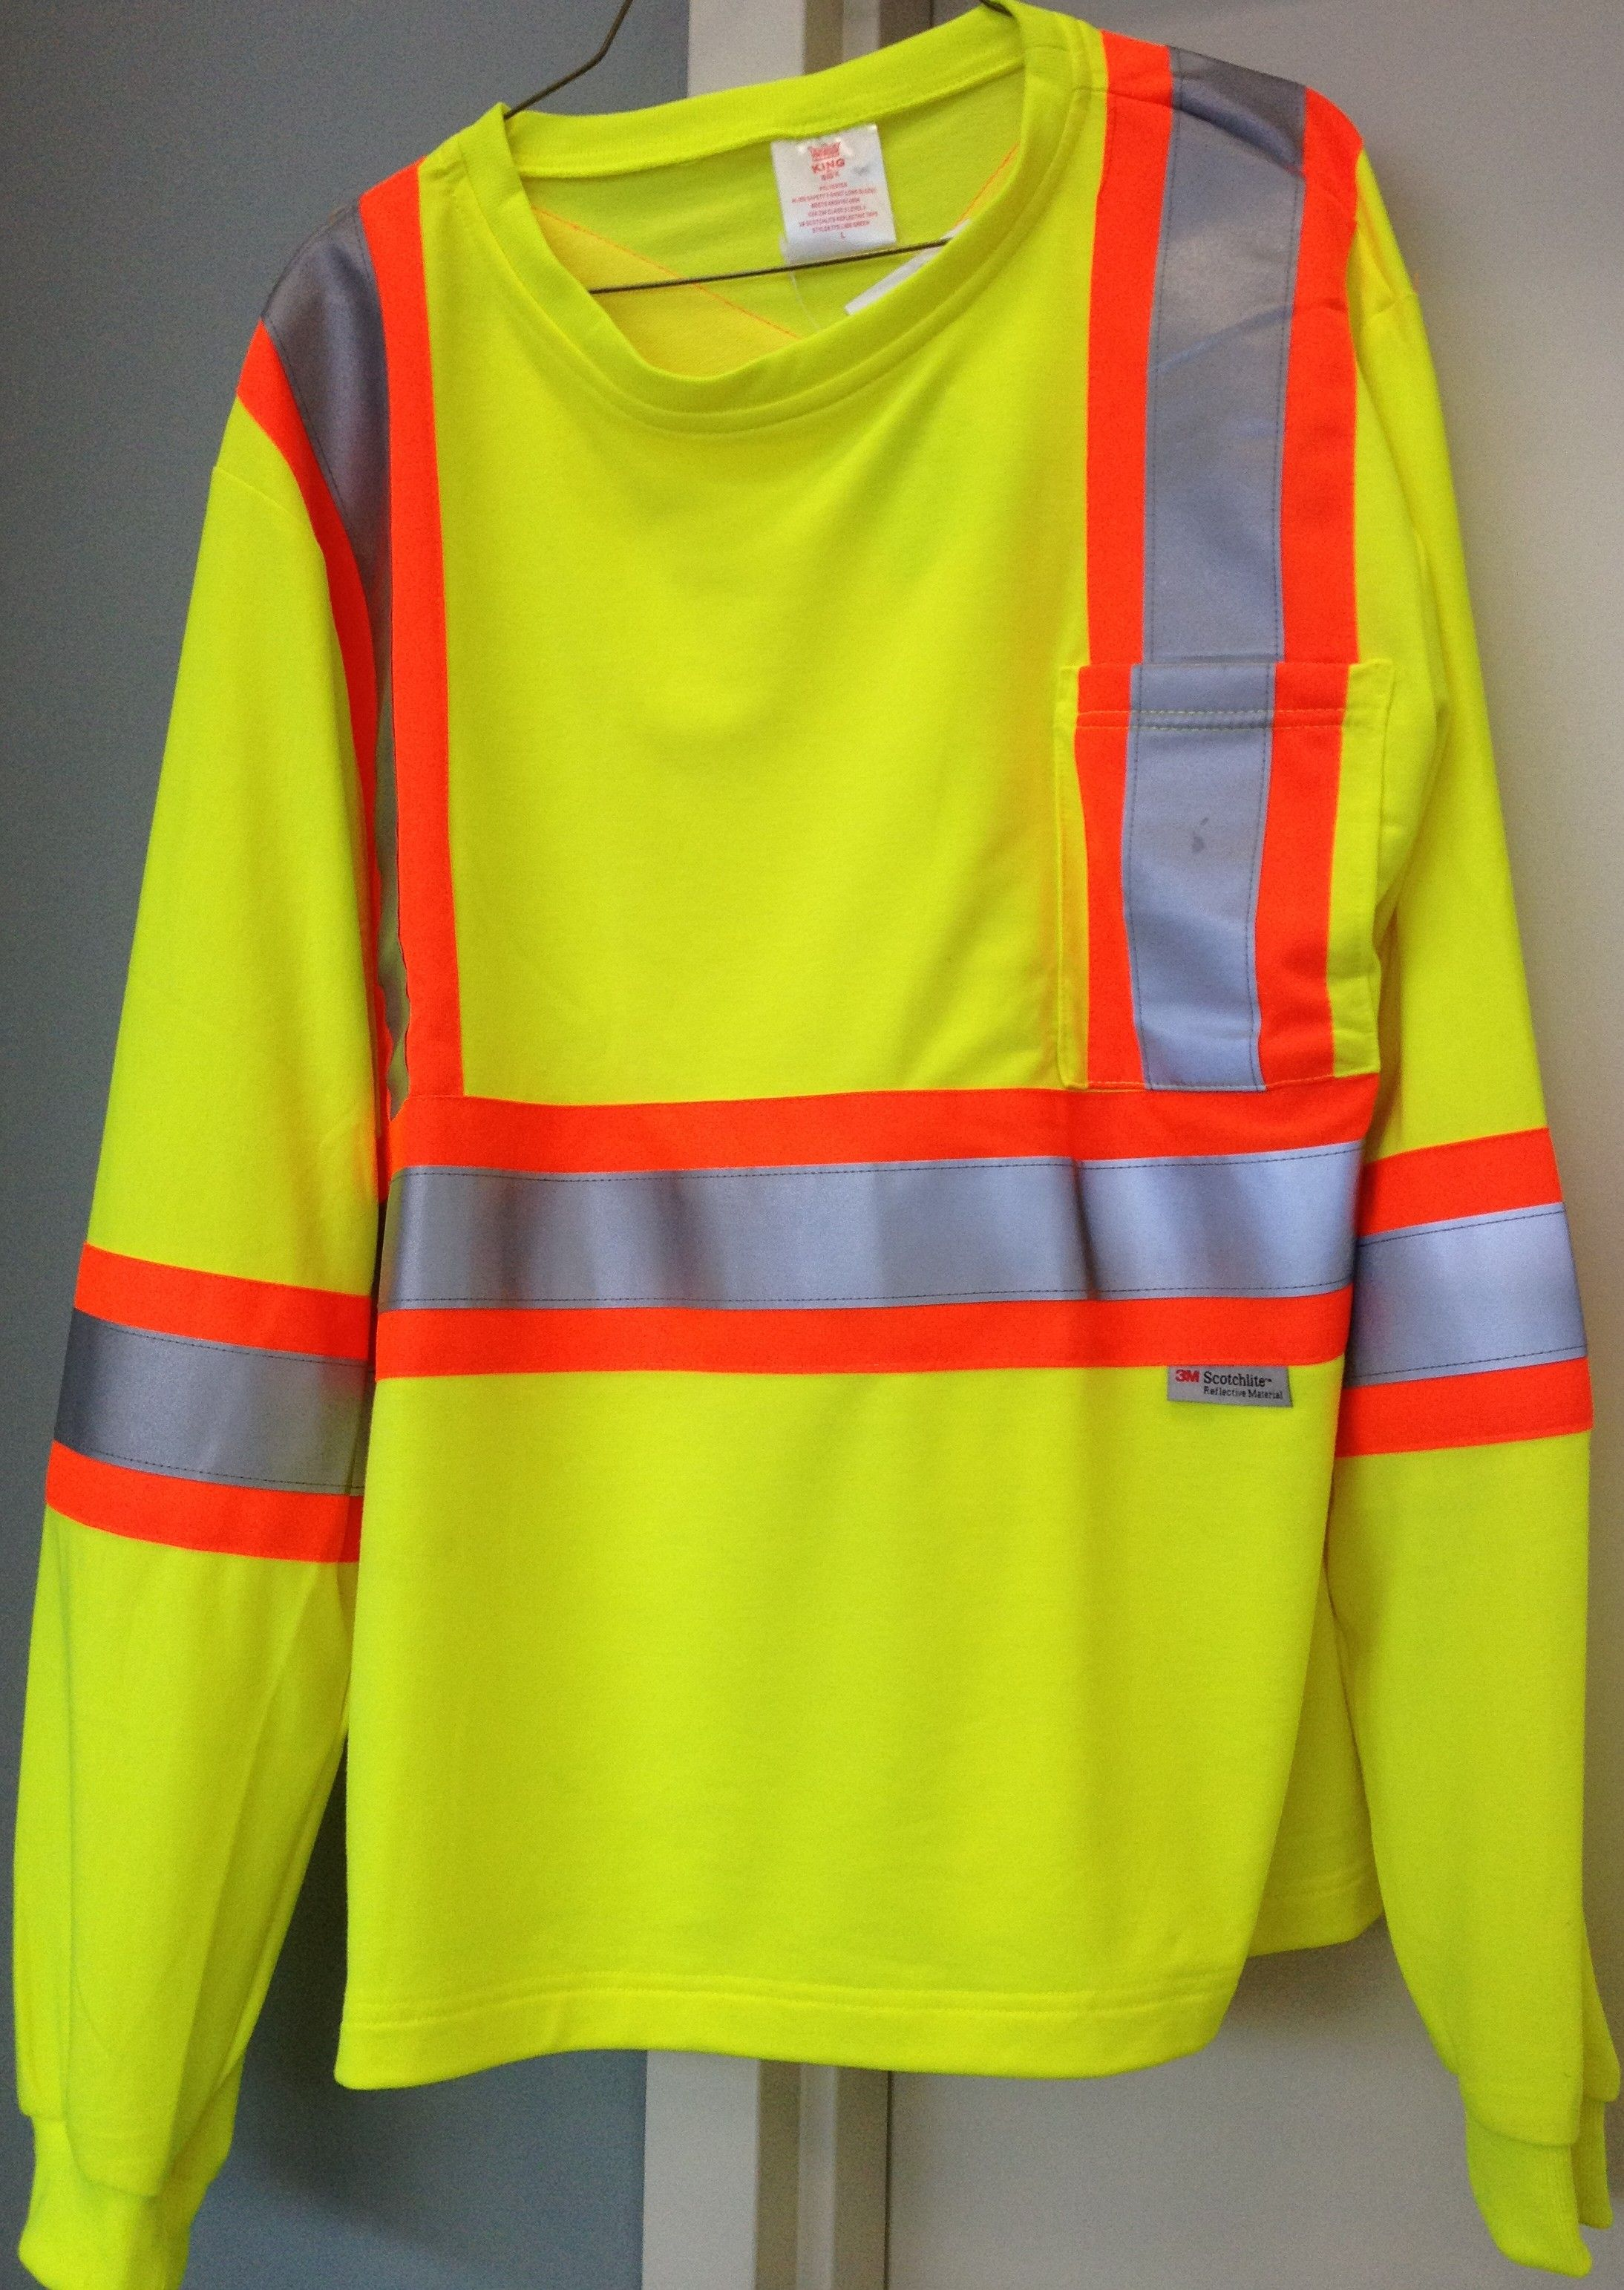 STIHL Lime green safety shirt - long sleeve